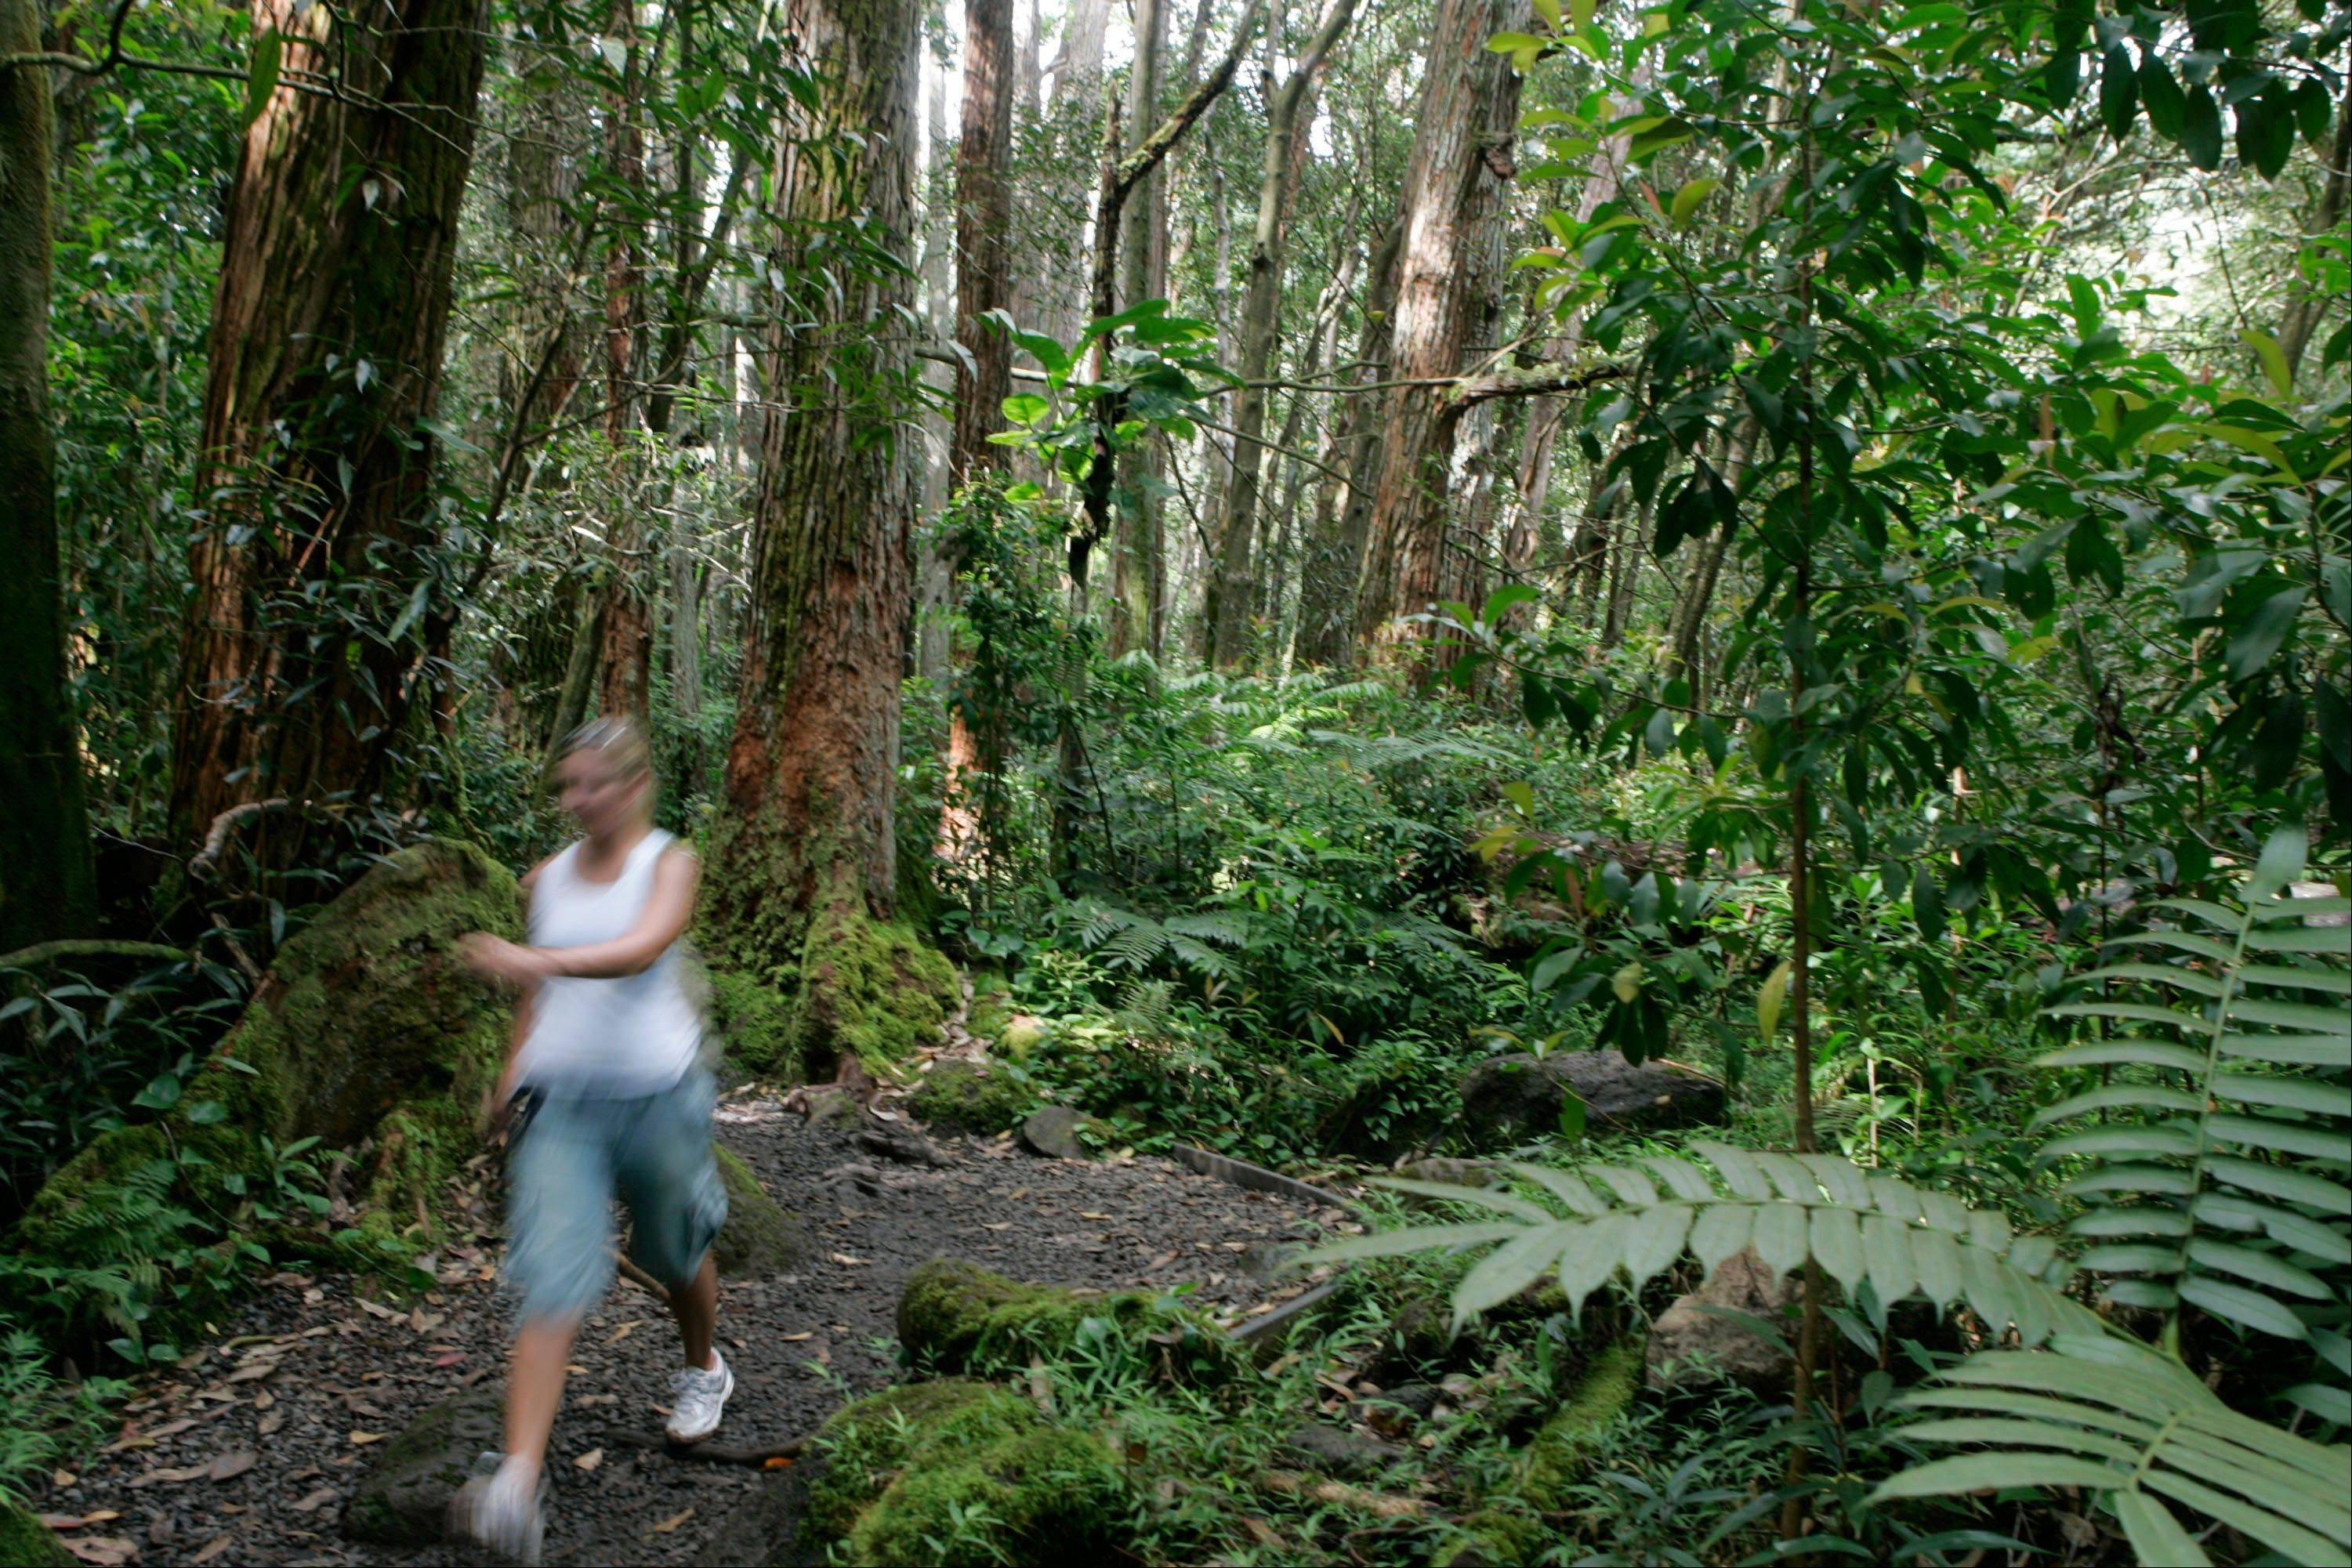 A hiker tackles the Manoa Falls Trail in Oahu's Manoa Valley in Honolulu.